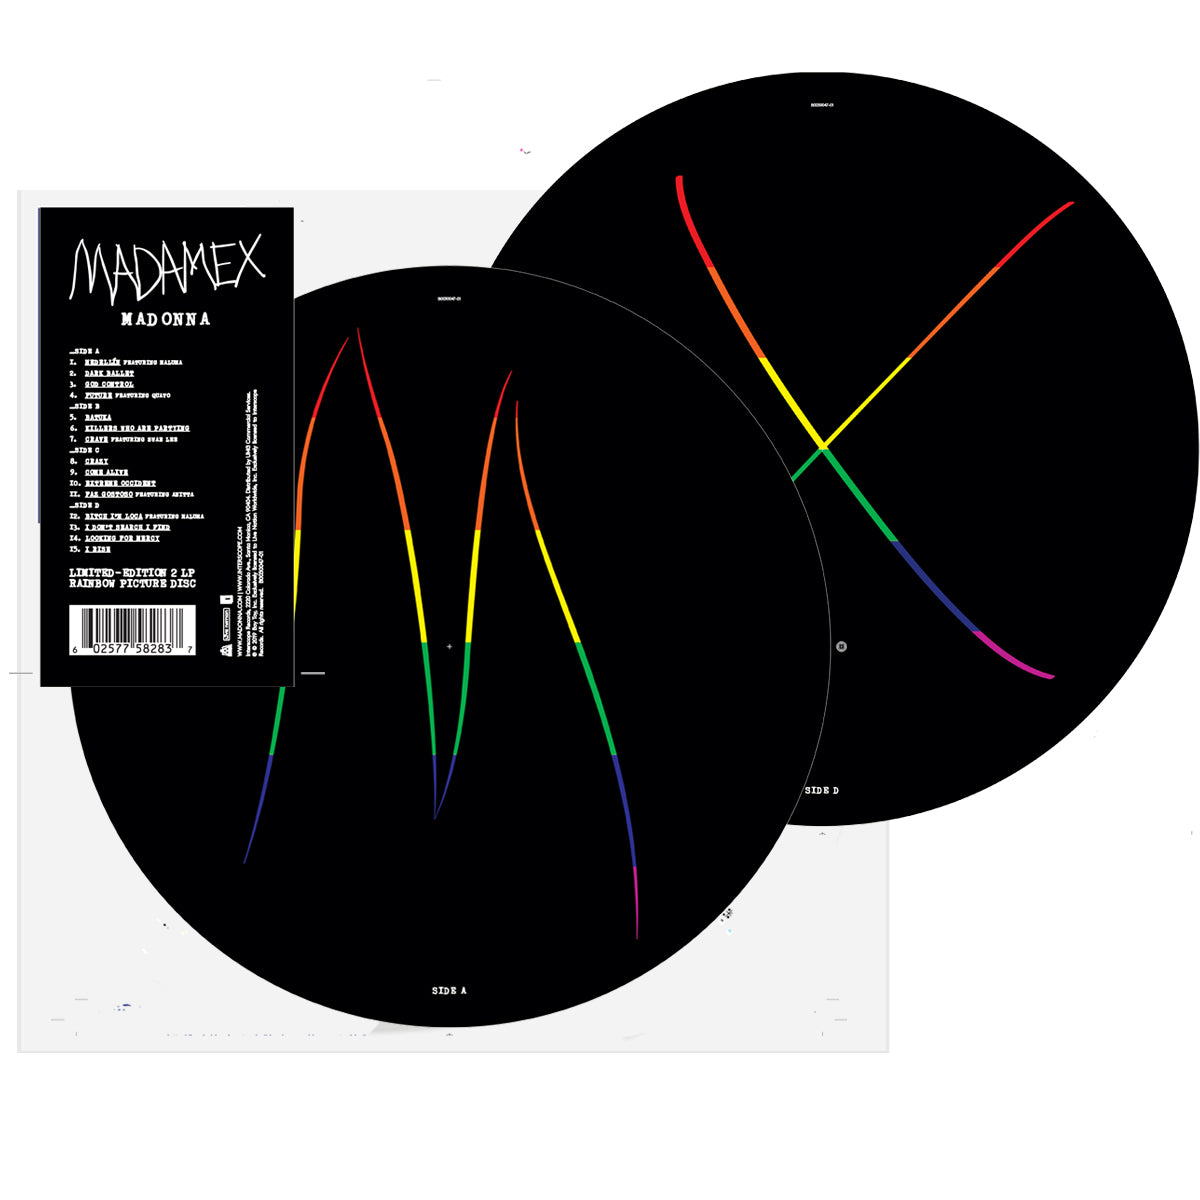 MX_Picture_Disc_Main_1200x.jpg?v=1558637